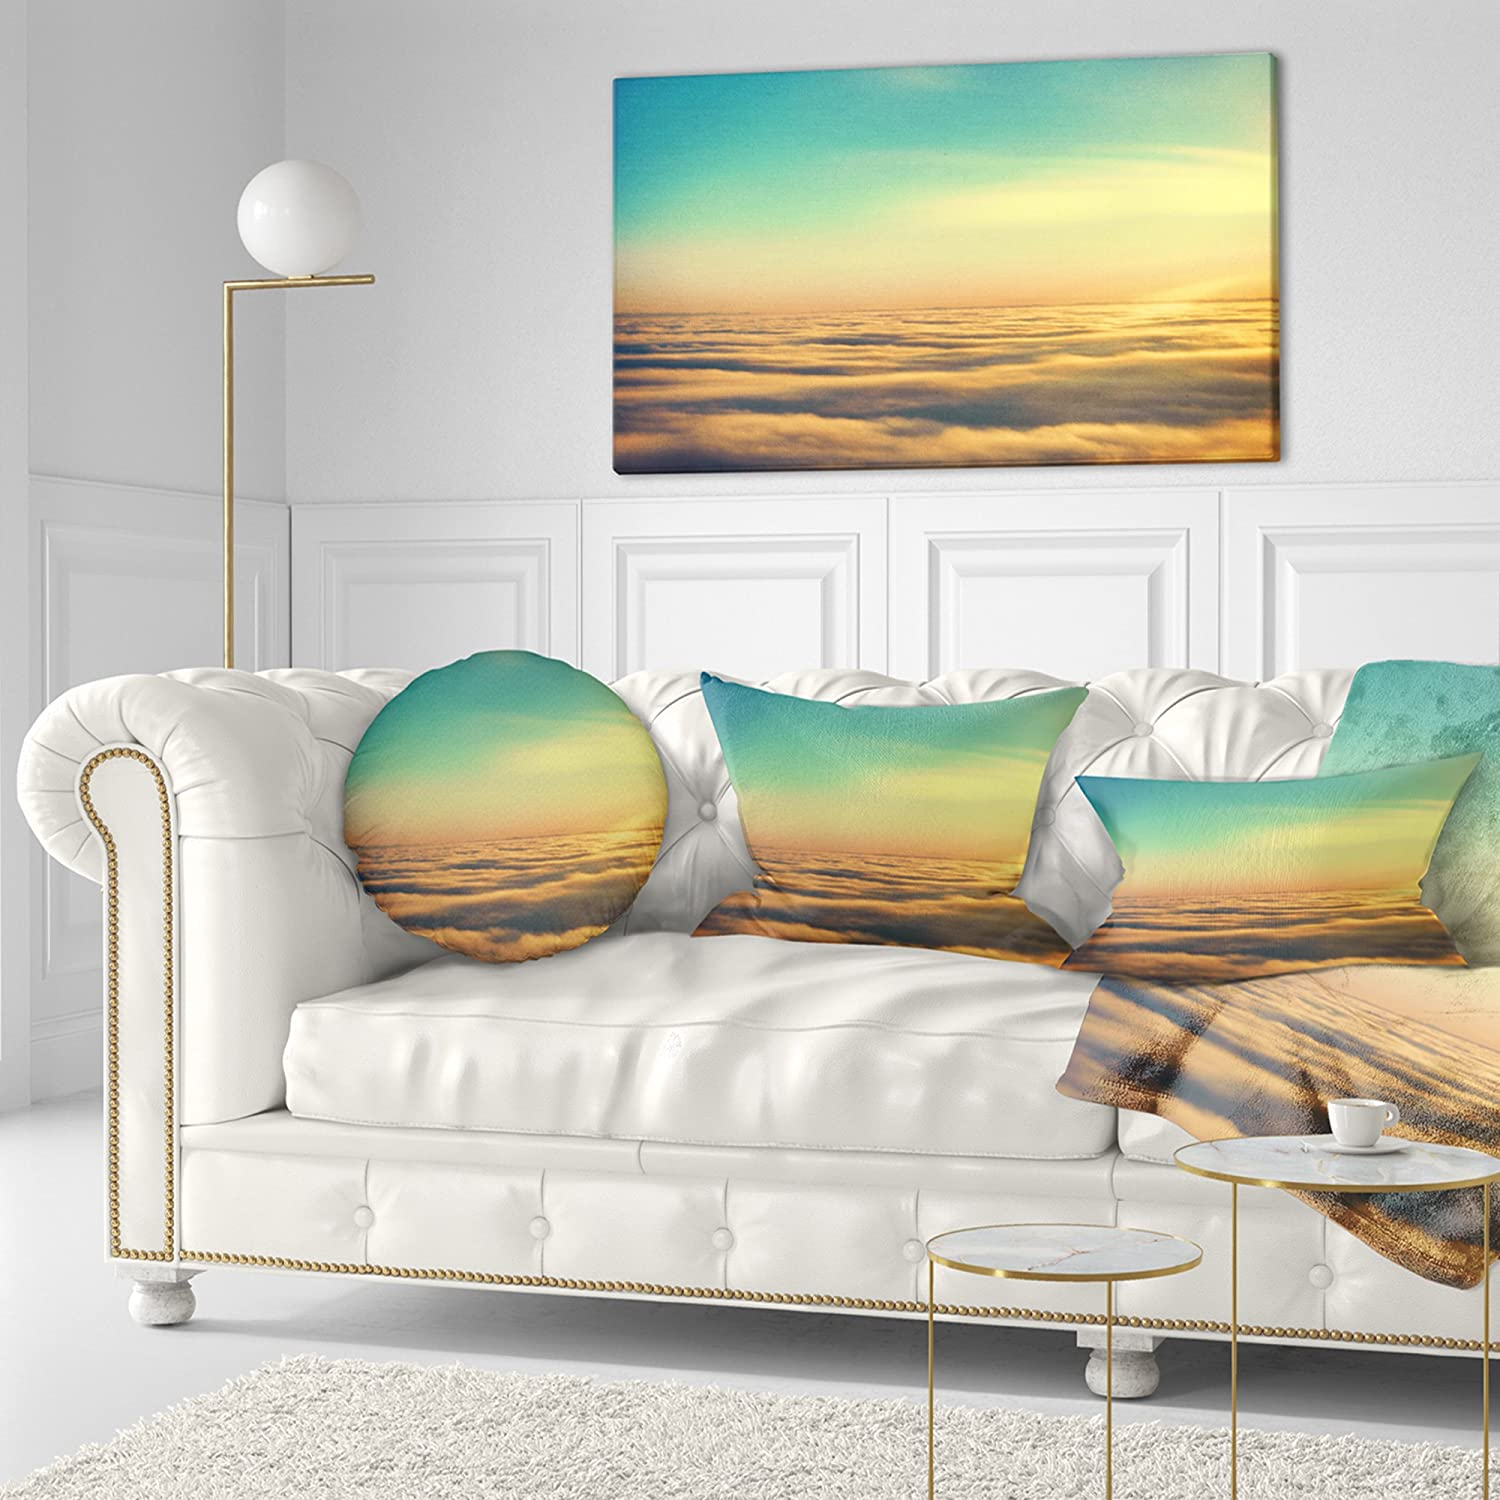 Sofa Throw Pillow 20 Insert Printed On Both Side Designart CU10967-20-20-C Amazing Plane View of Sky Oversized Beach Round Cushion Cover for Living Room